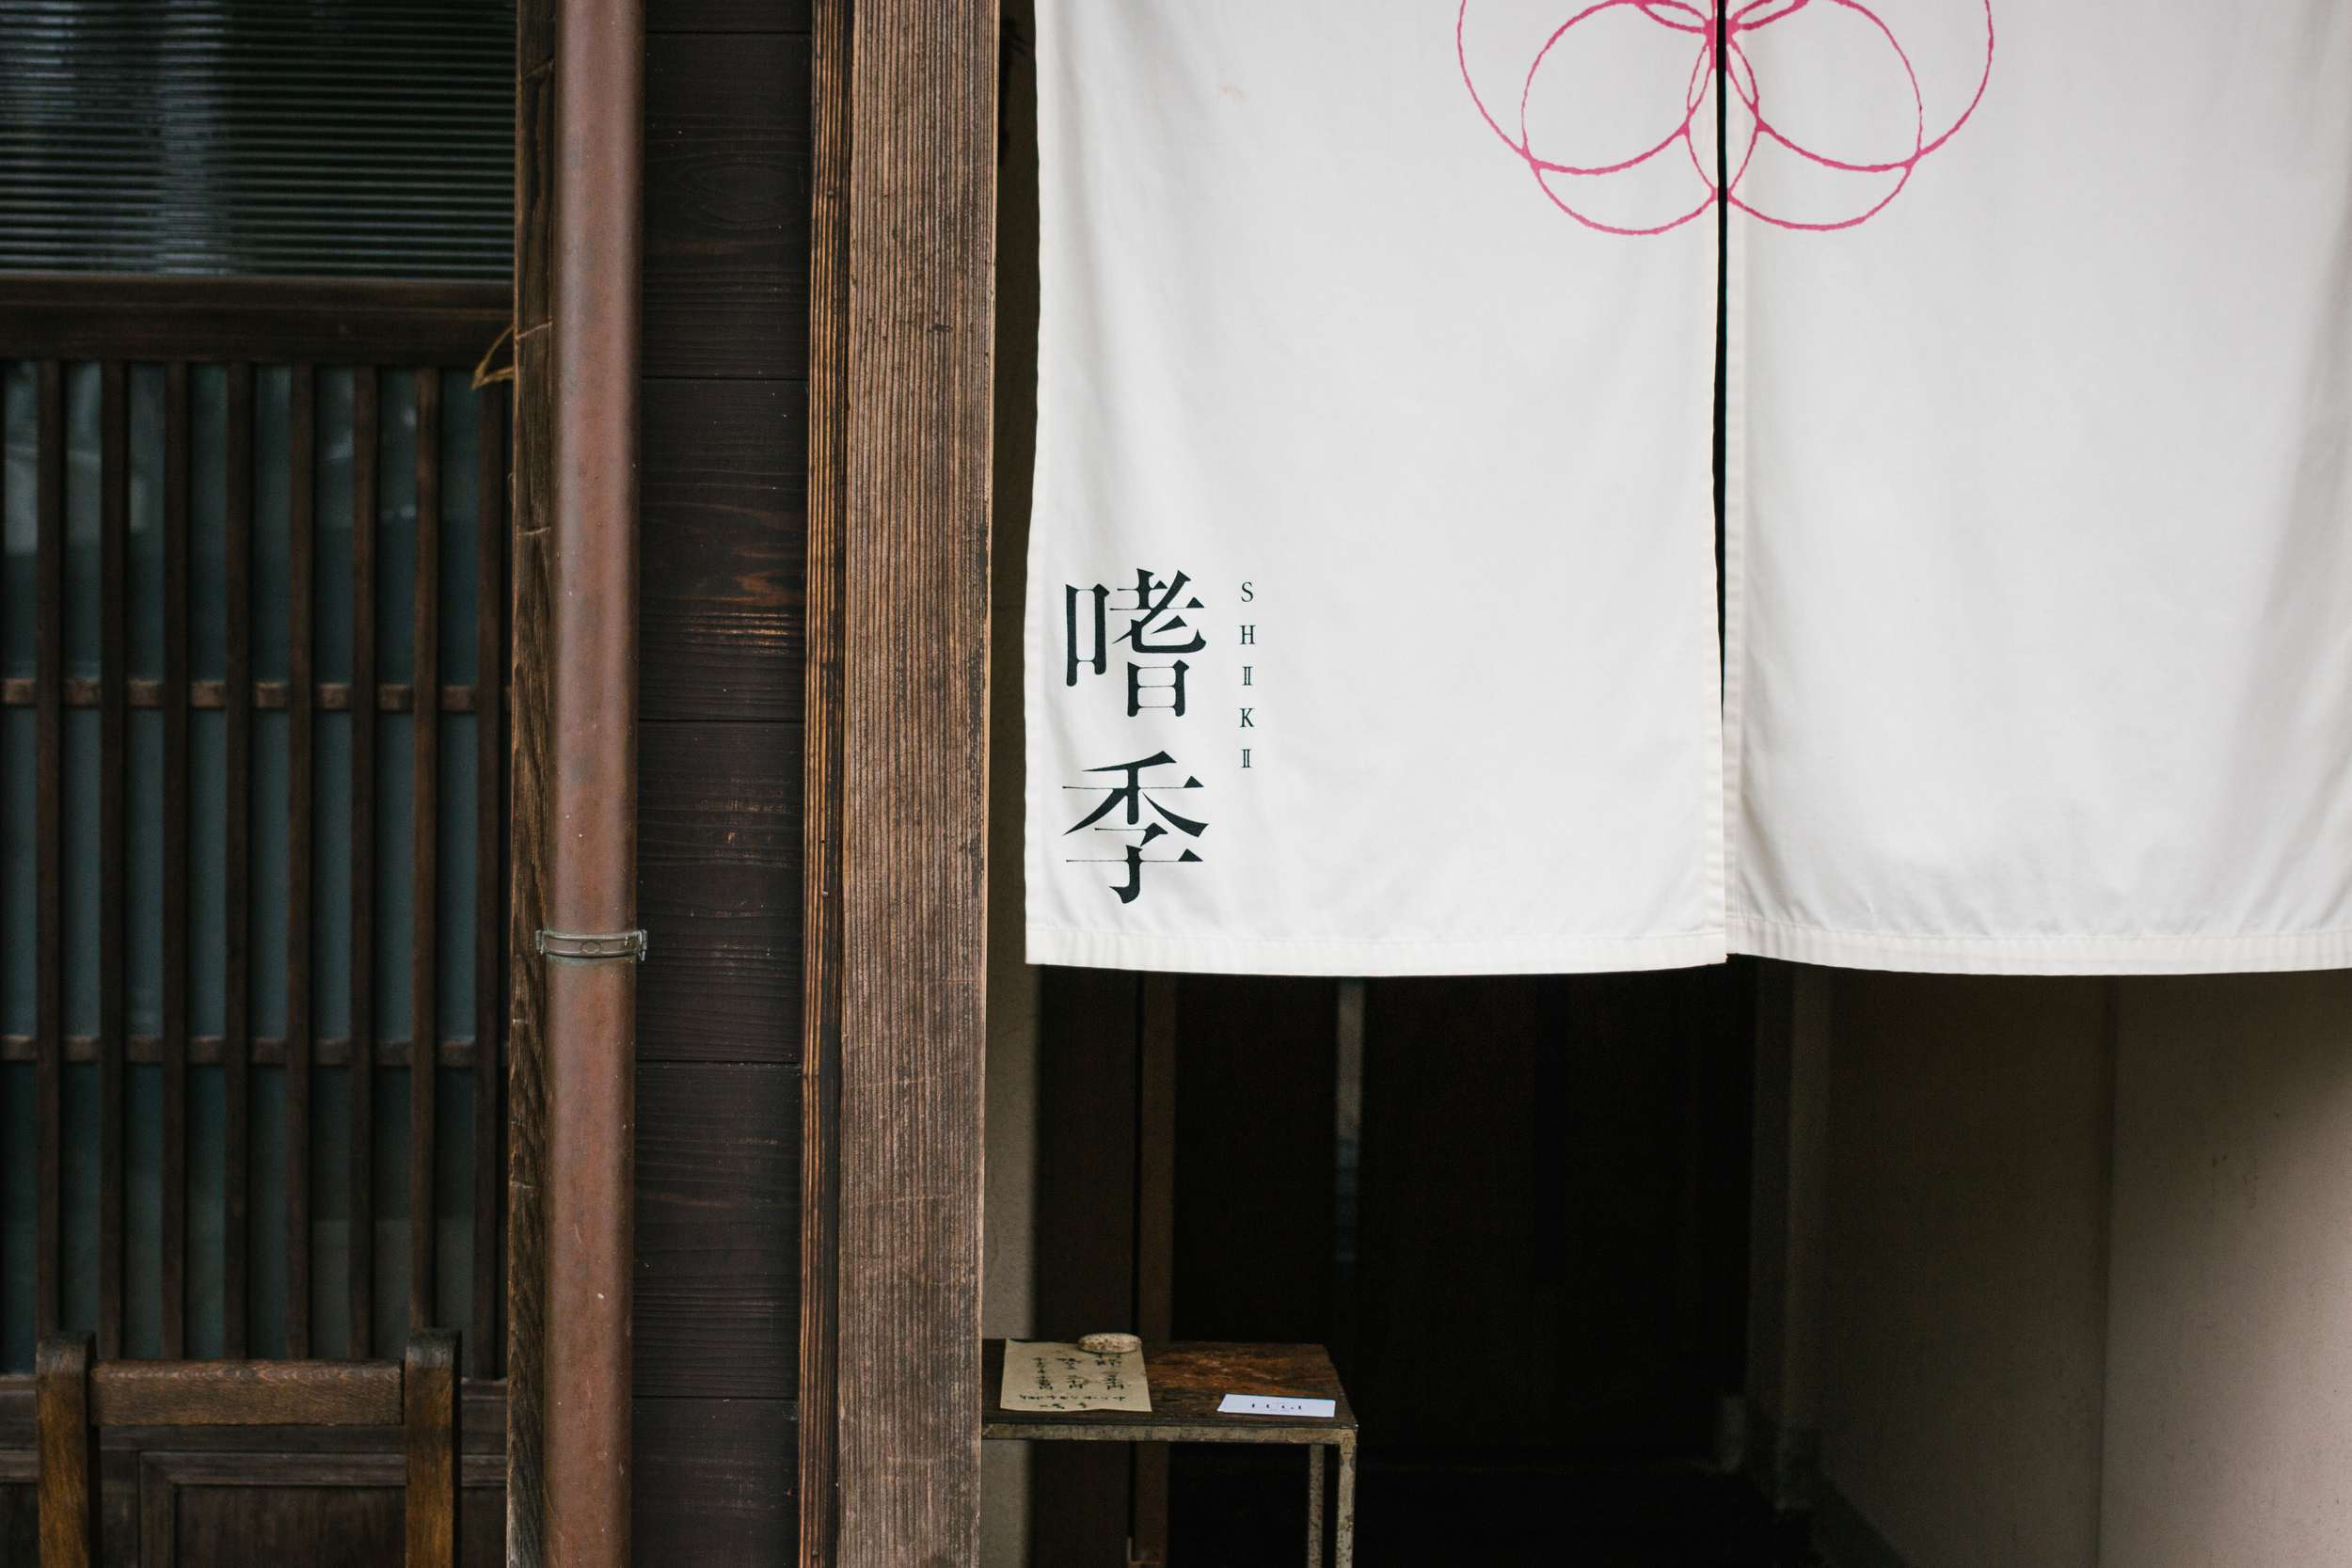 Lunch at  嗜季 Shiki